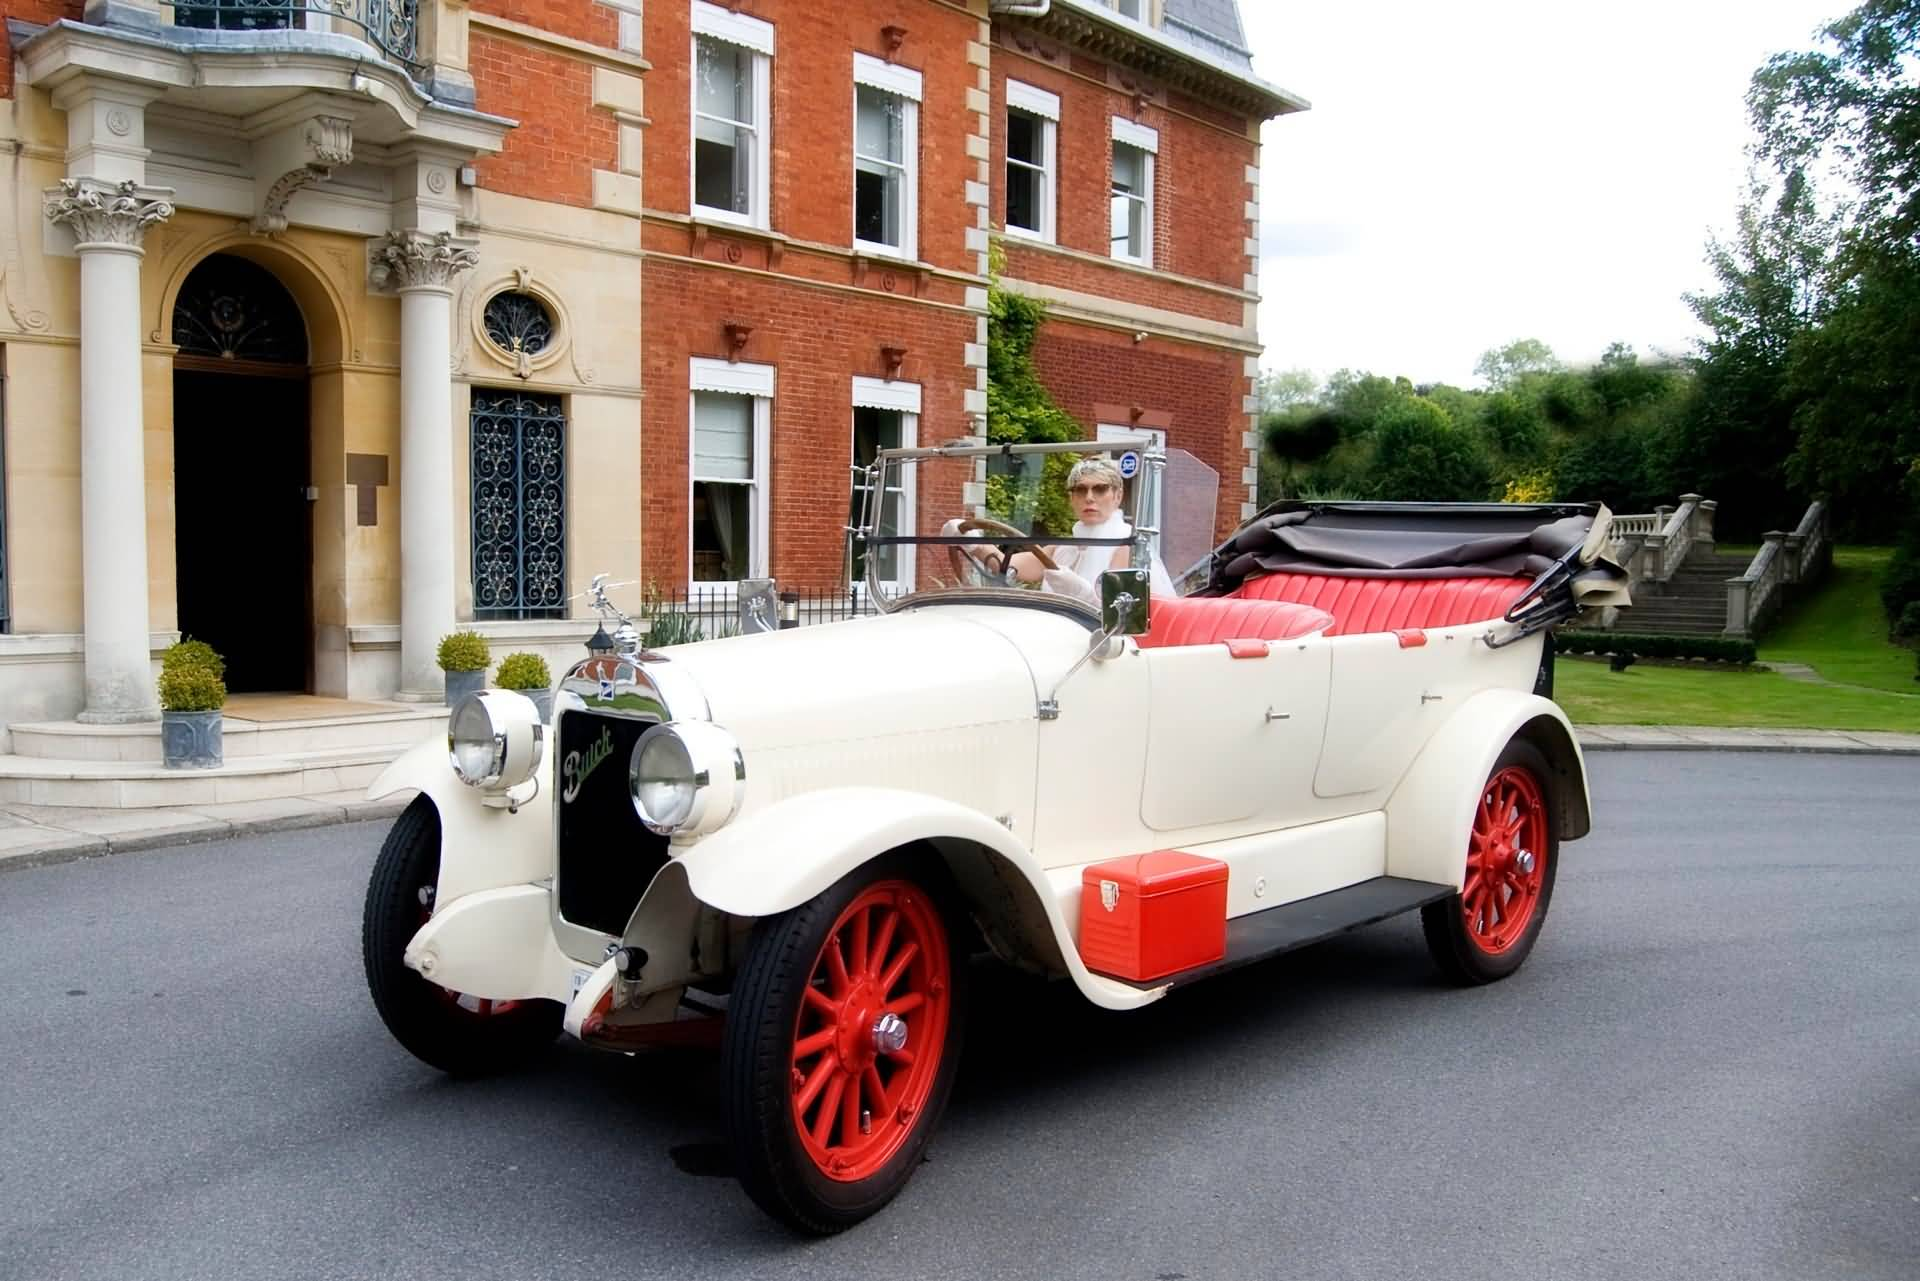 Seems the brides want's to drive!!&nbsp;&nbsp;&nbsp; - &nbsp;&nbsp;&nbsp;<small>&copy;&nbsp;&nbsp; Fetcham Park and efc photography&nbsp;</small>